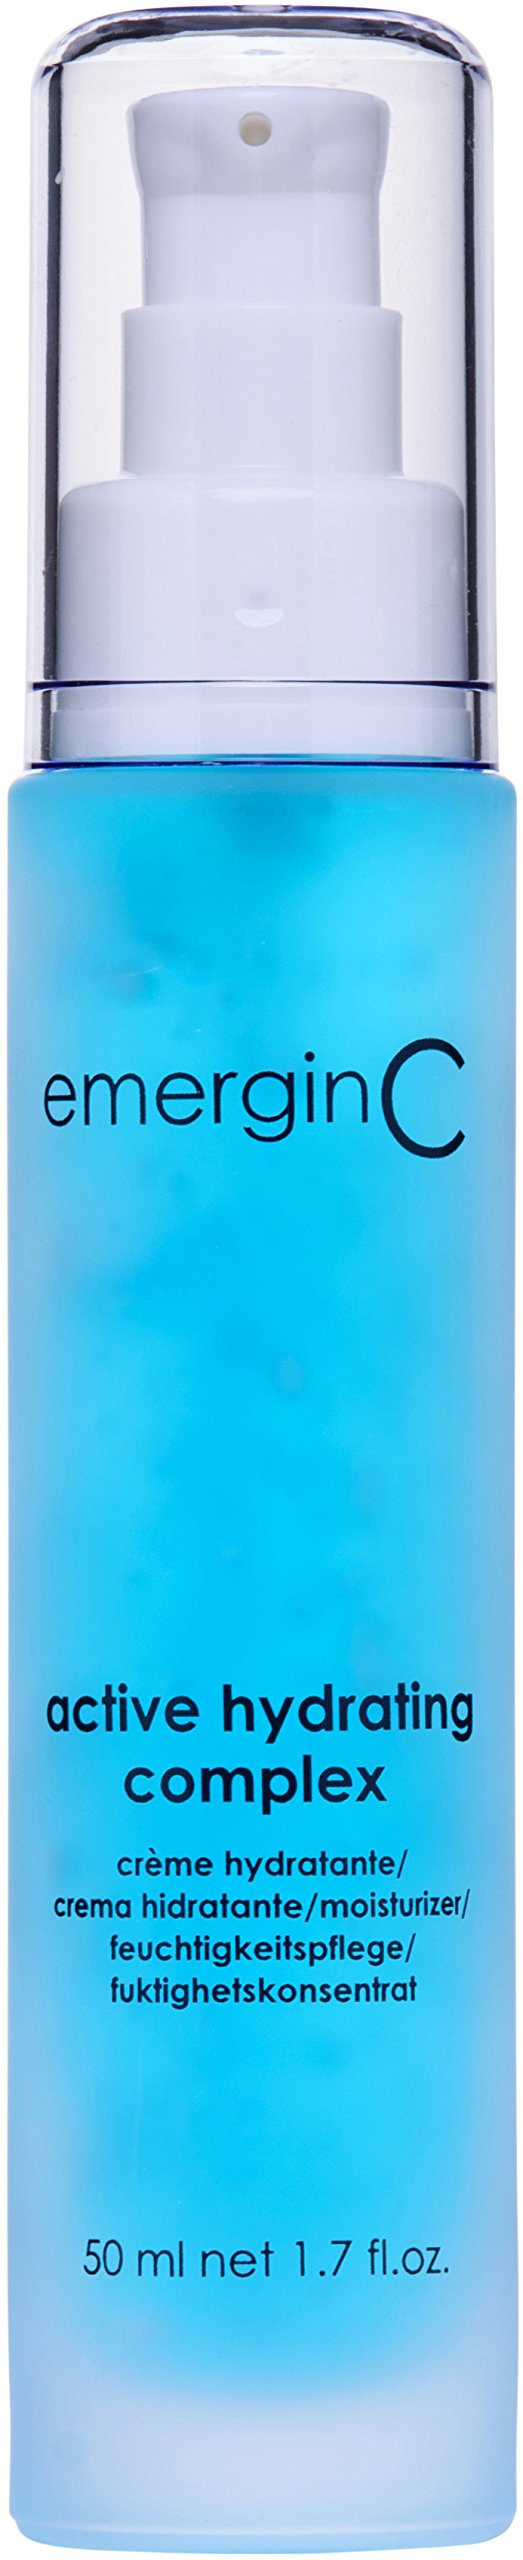 emerginC Active Hydrating Complex - Soothing Oil-Free Mattifying Gel Moisturizer for Oily, Dry + Sensitive Skin (1.6 Ounces, 50 Milliliters)